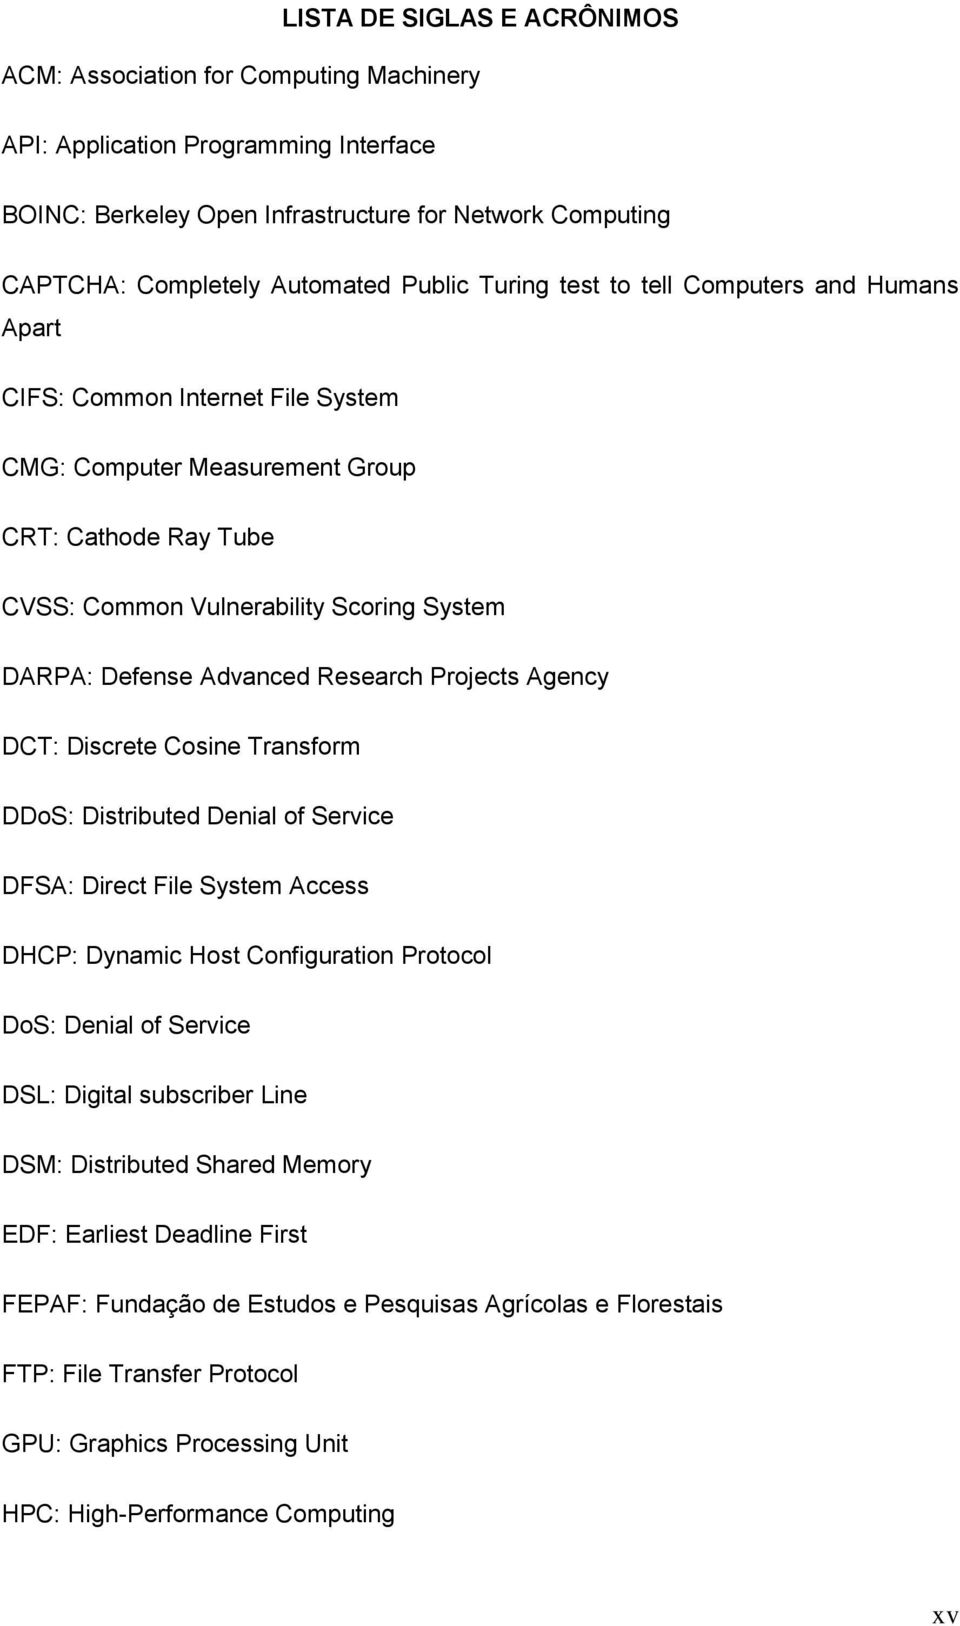 Advanced Research Projects Agency DCT: Discrete Cosine Transform DDoS: Distributed Denial of Service DFSA: Direct File System Access DHCP: Dynamic Host Configuration Protocol DoS: Denial of Service